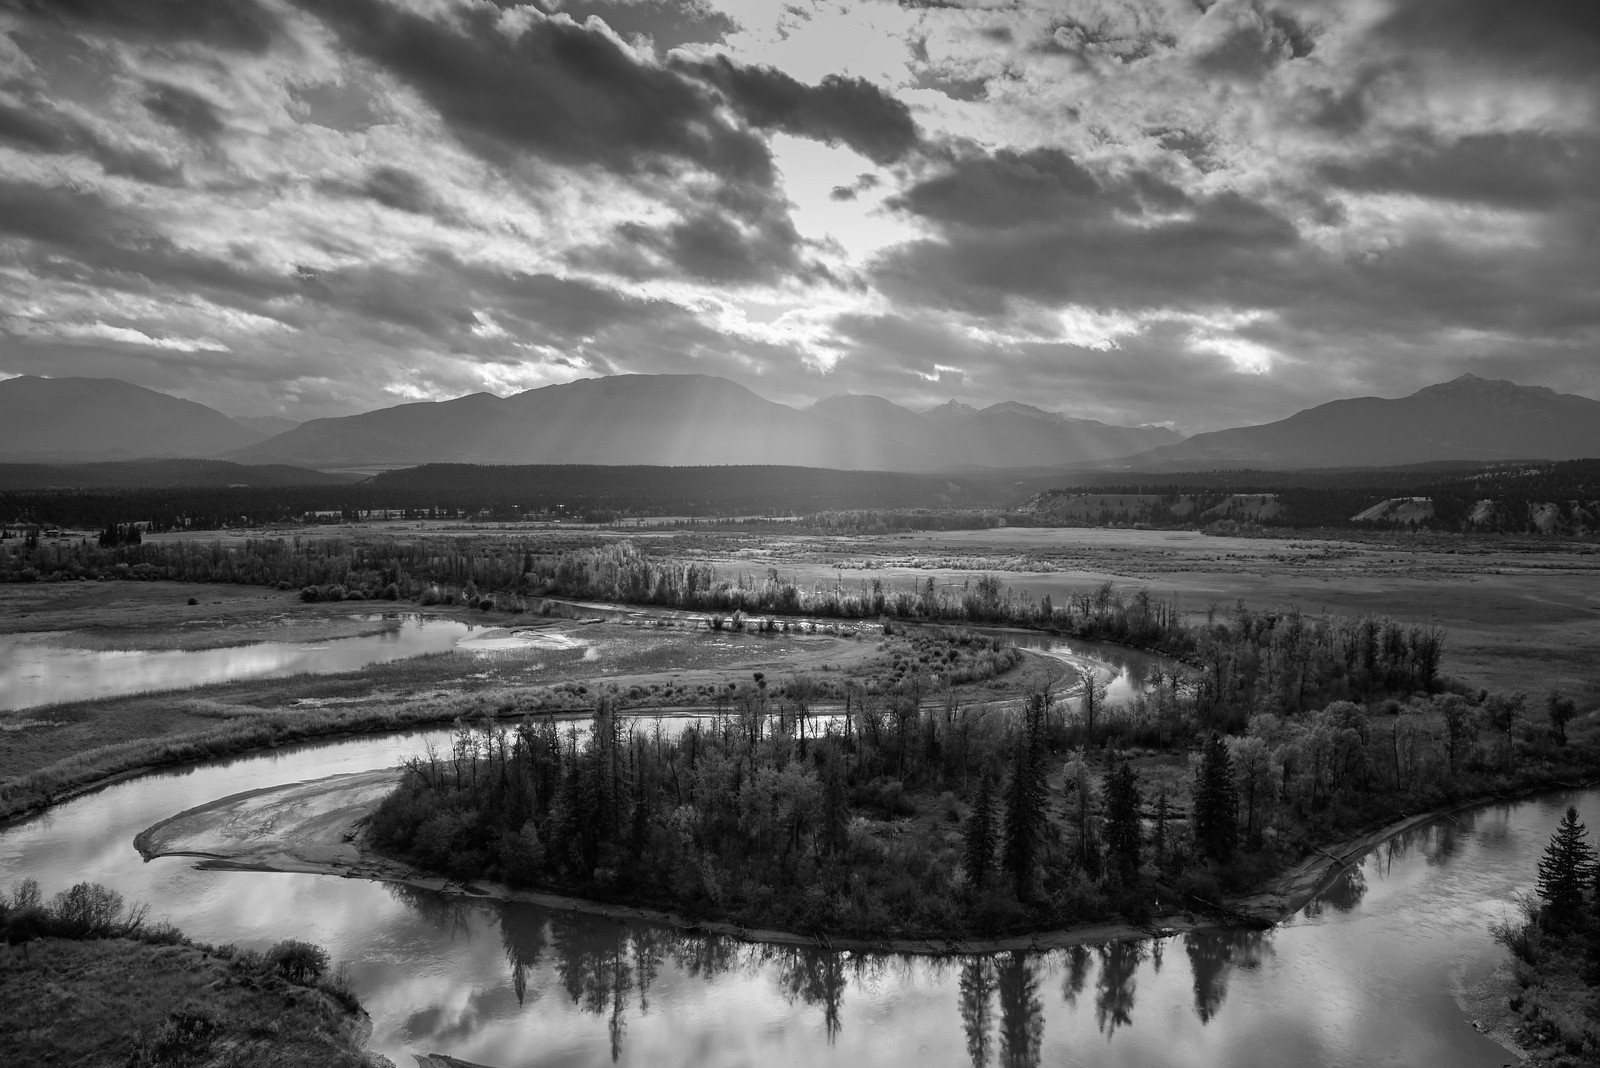 A September Afternoon in the Columbia Valley